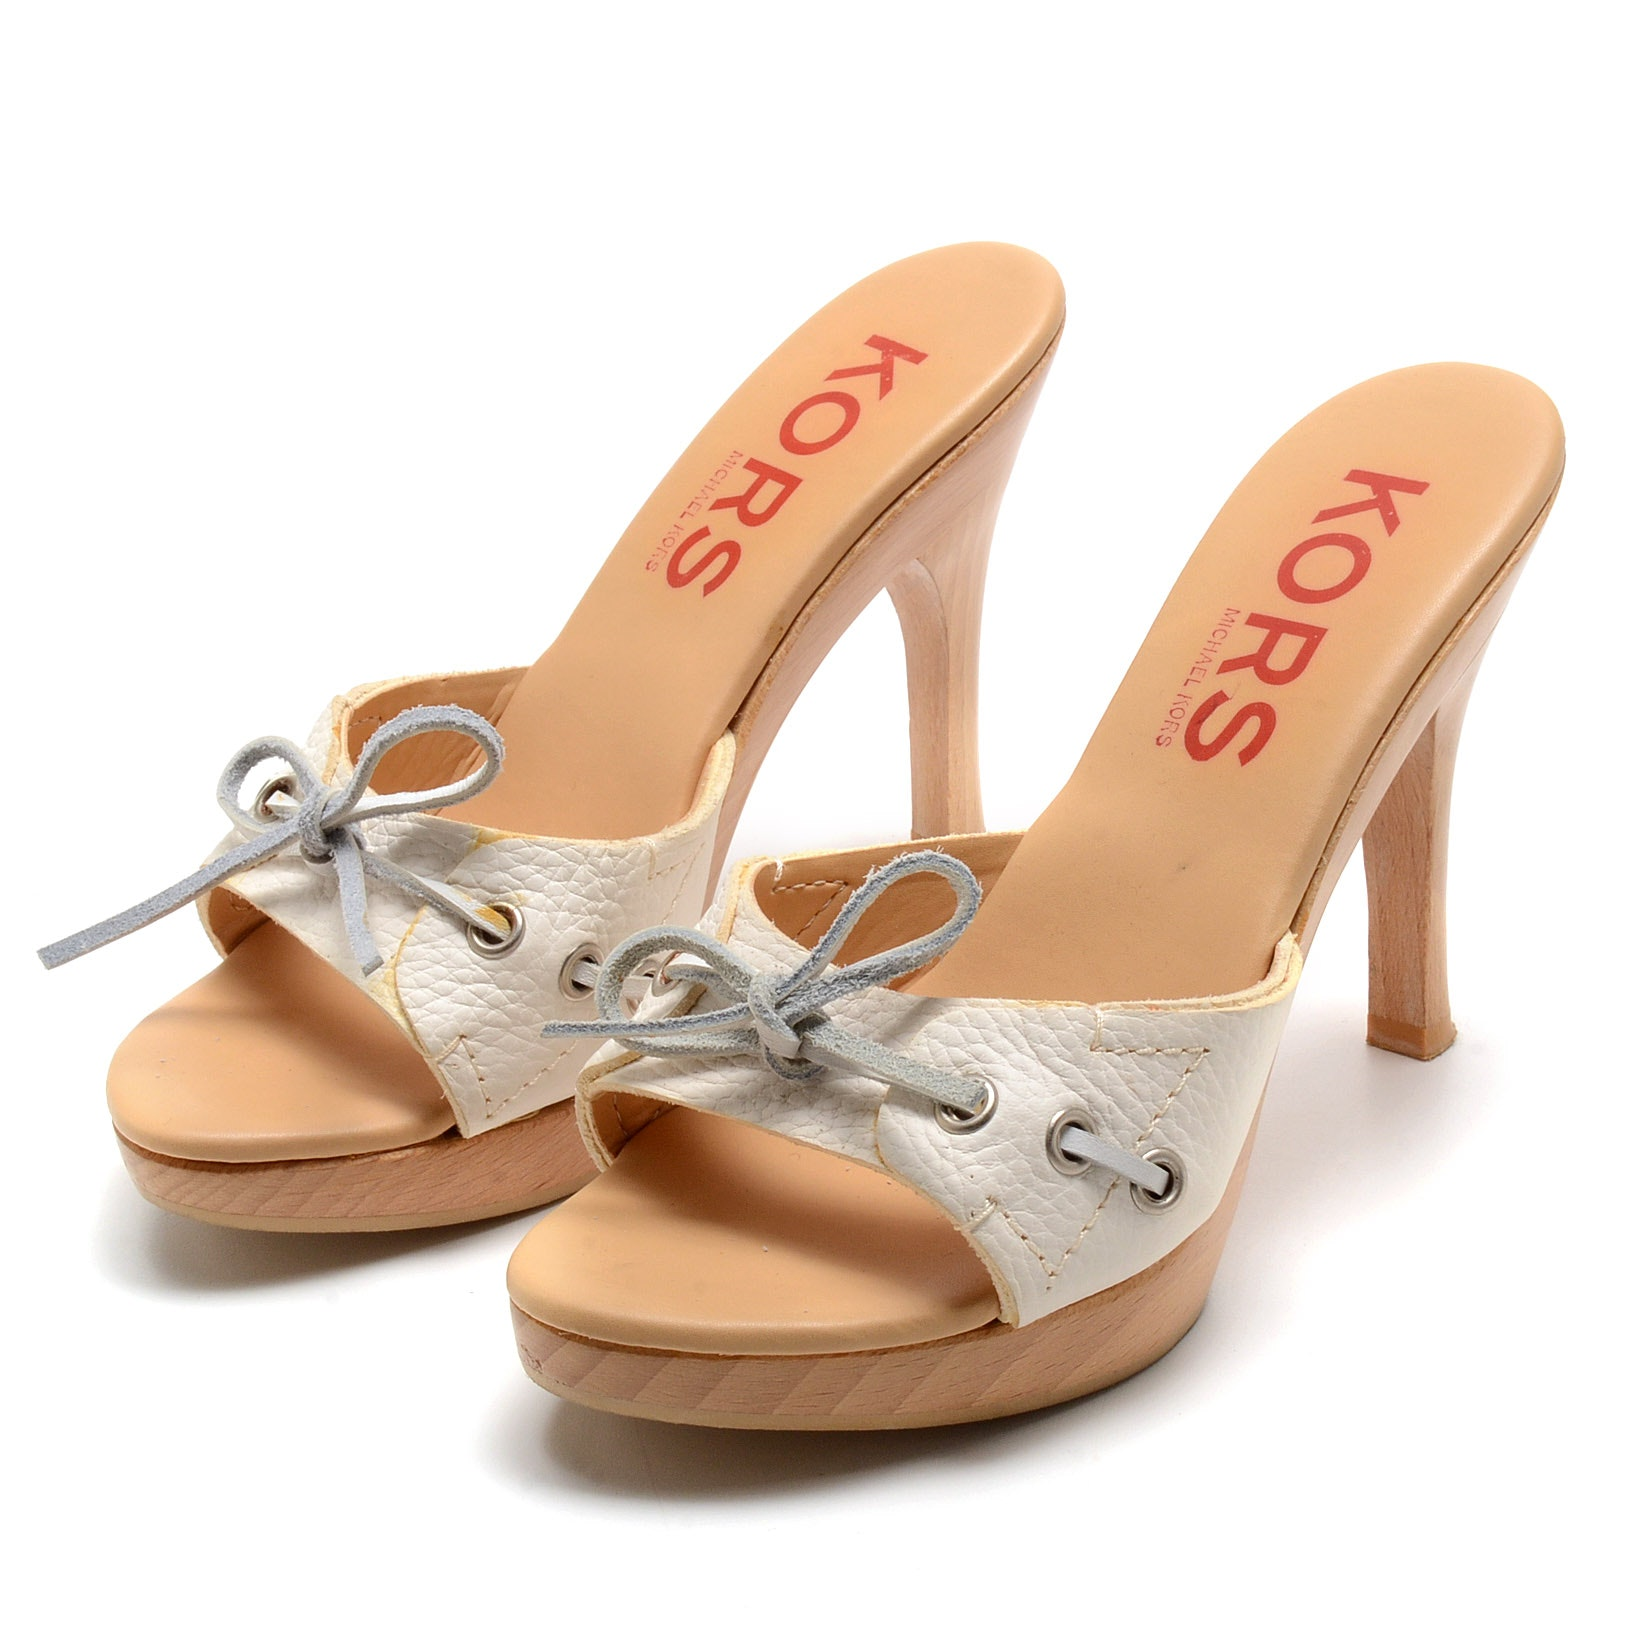 Kors by Michael Kors White Leather Wooden Platform Sandals